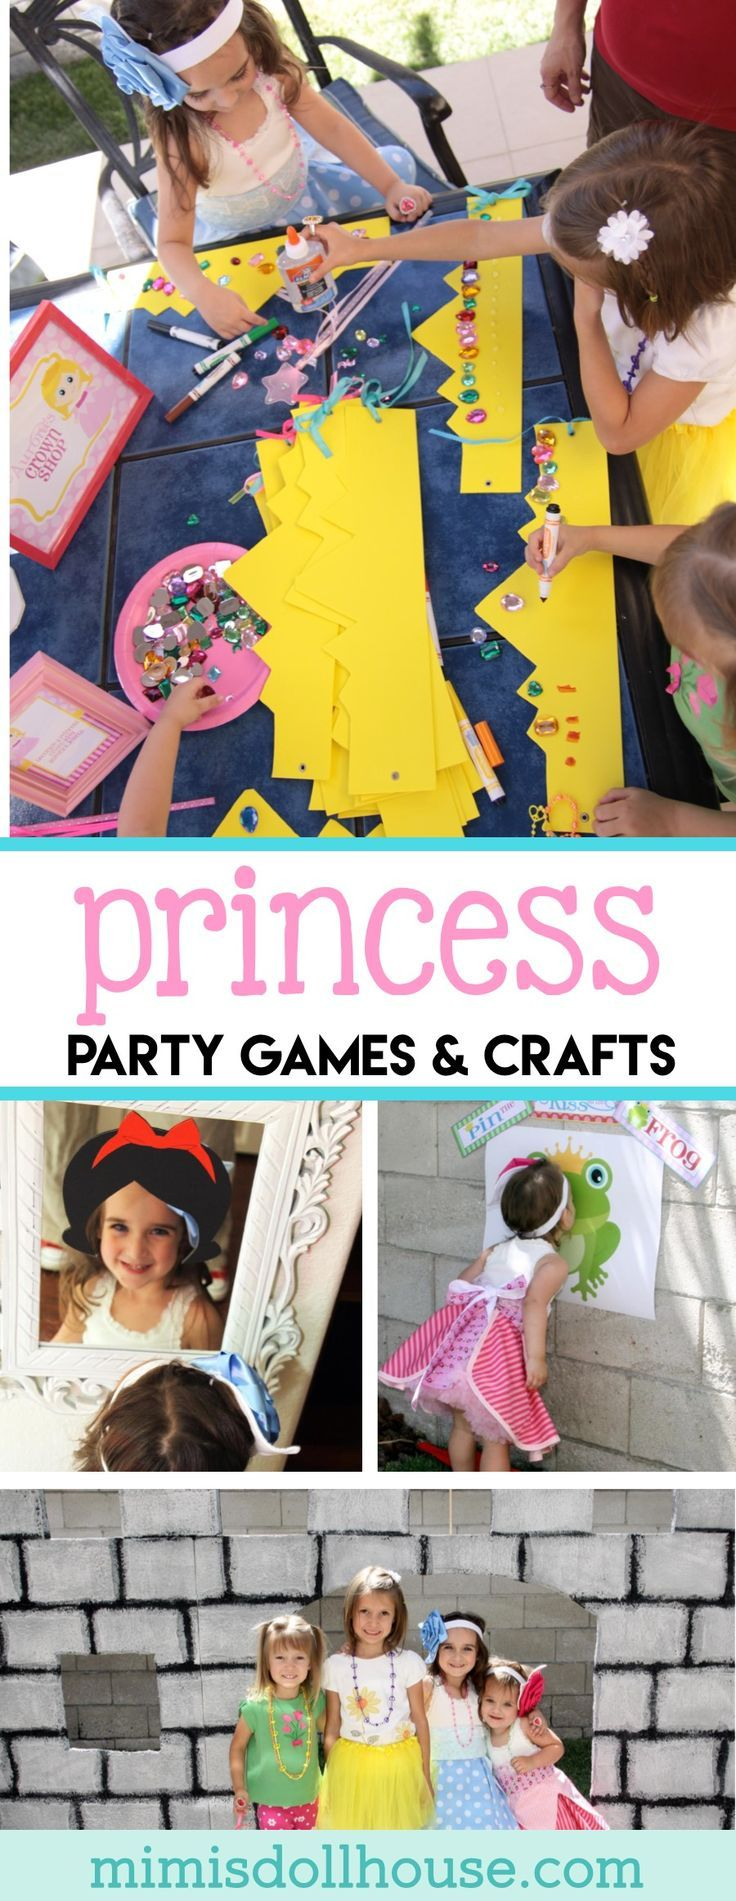 Princess Party: Aubrey's 4th Birthday Storybook Celebration (Part 2). Ready for some more Princess Party Fun? I'm sharing the second part of my daughter's birthday party today (Princess Party Part 1).  Be sure to check out the Castle Tutorial, Crown Tutorial, and Storybook Tutorial that coordinate with this design.  Also, check out all of my princess party ideas. via @mimisdollhouse